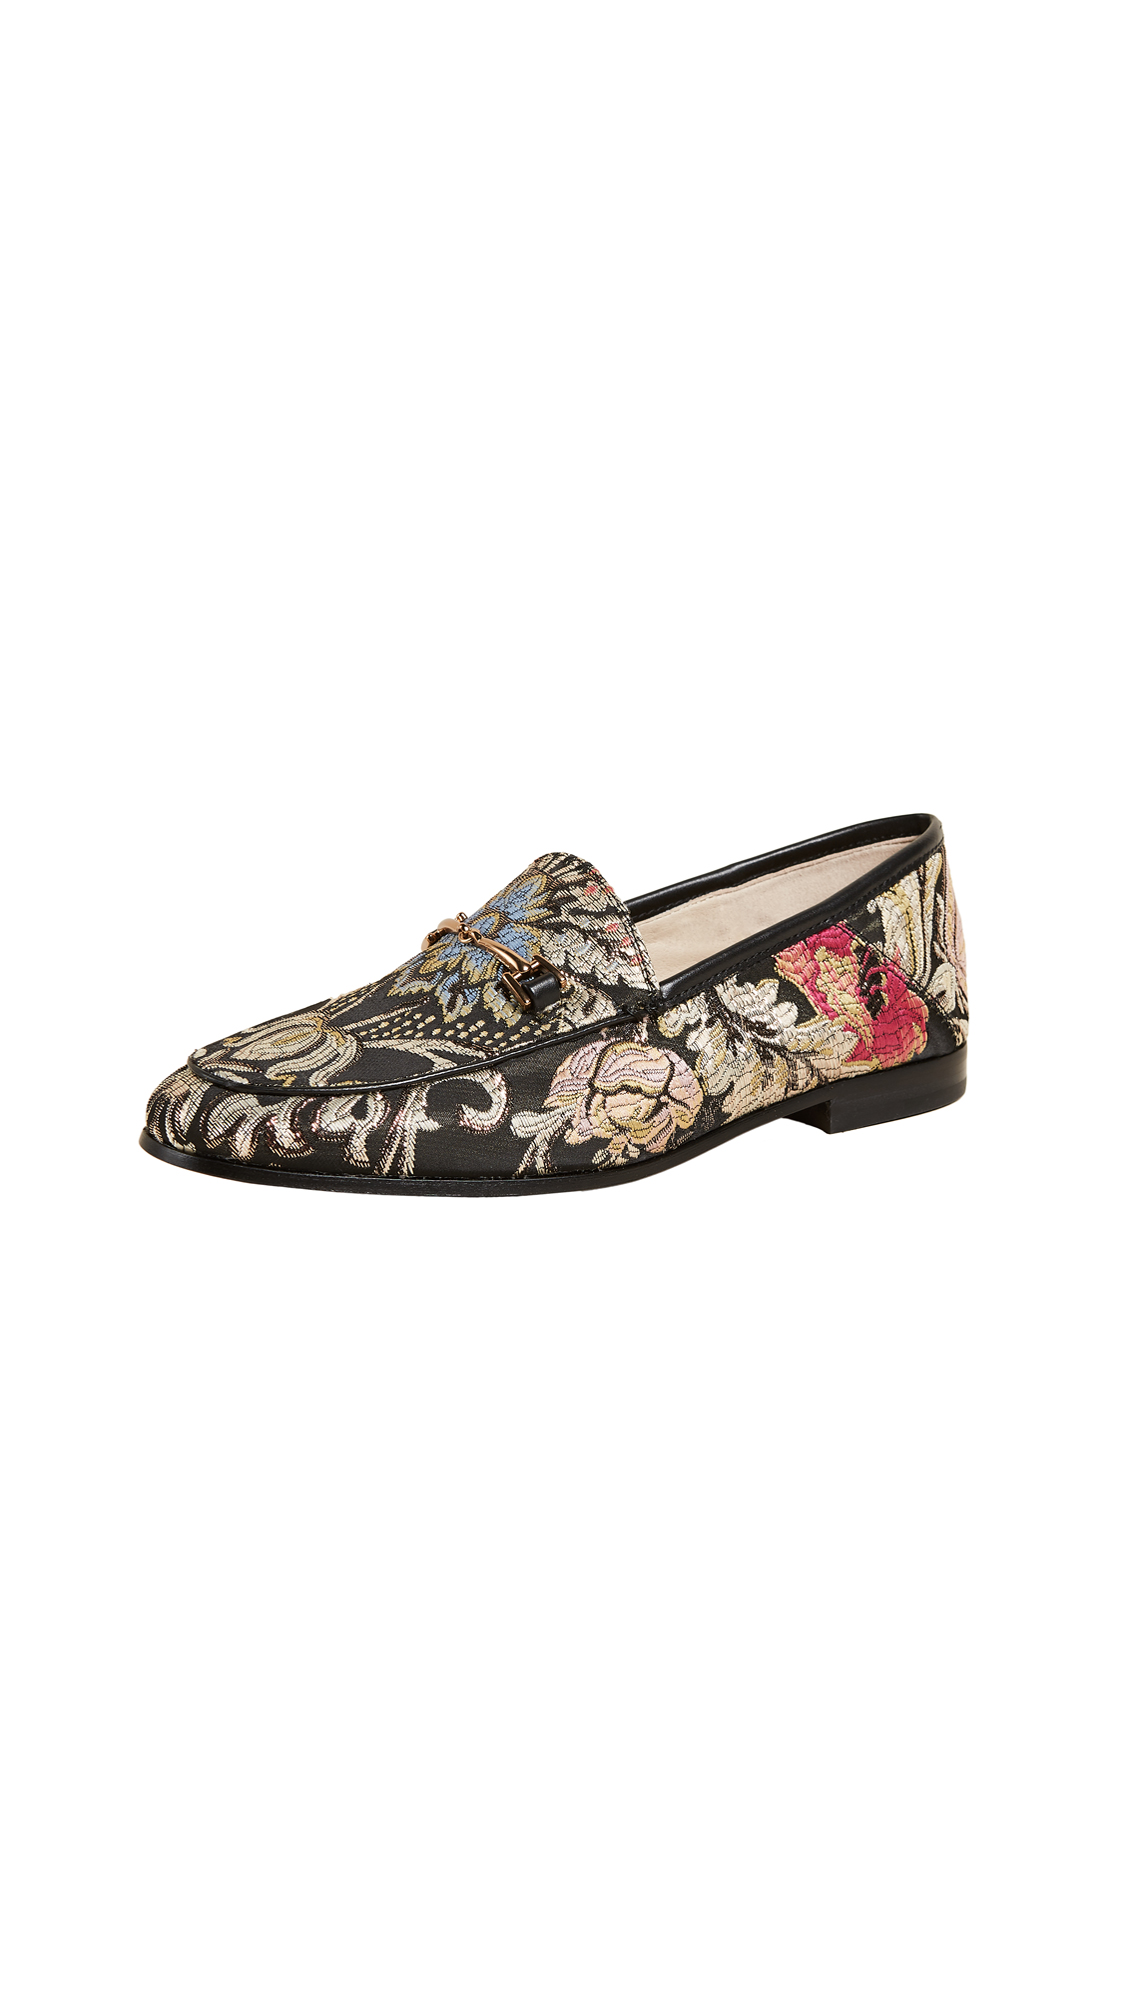 Sam Edelman Loraine Loafers - Black Multi